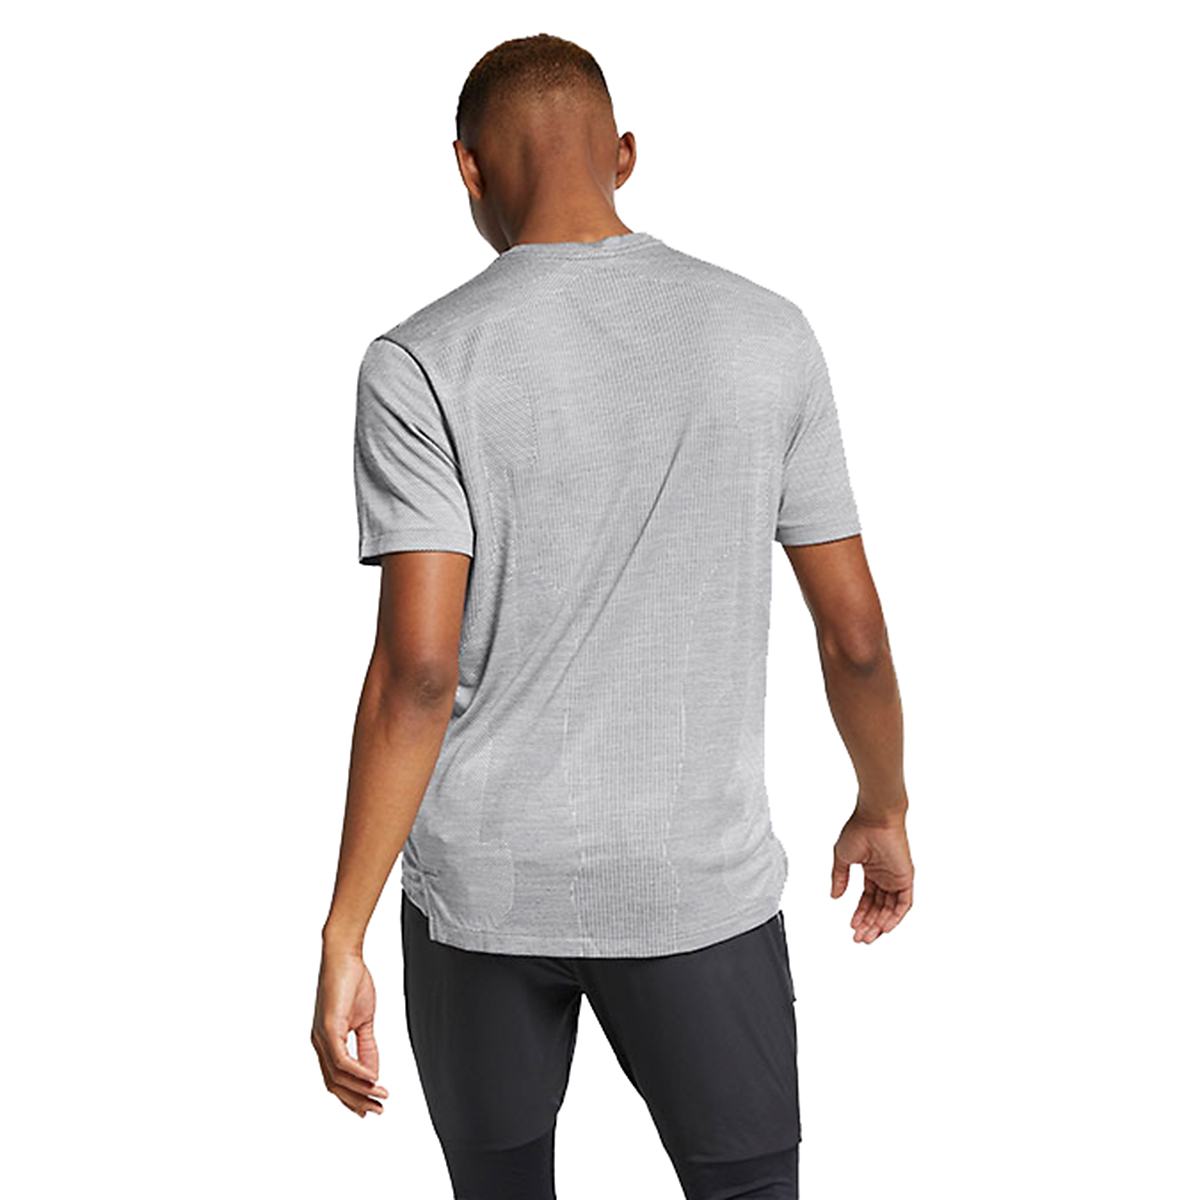 Men's Nike Techknit Ultra Top Short Sleeve Shirt - Color: Gunsmoke/Atmosphere Grey - Size: S, Gunsmoke/Atmosphere Grey, large, image 2